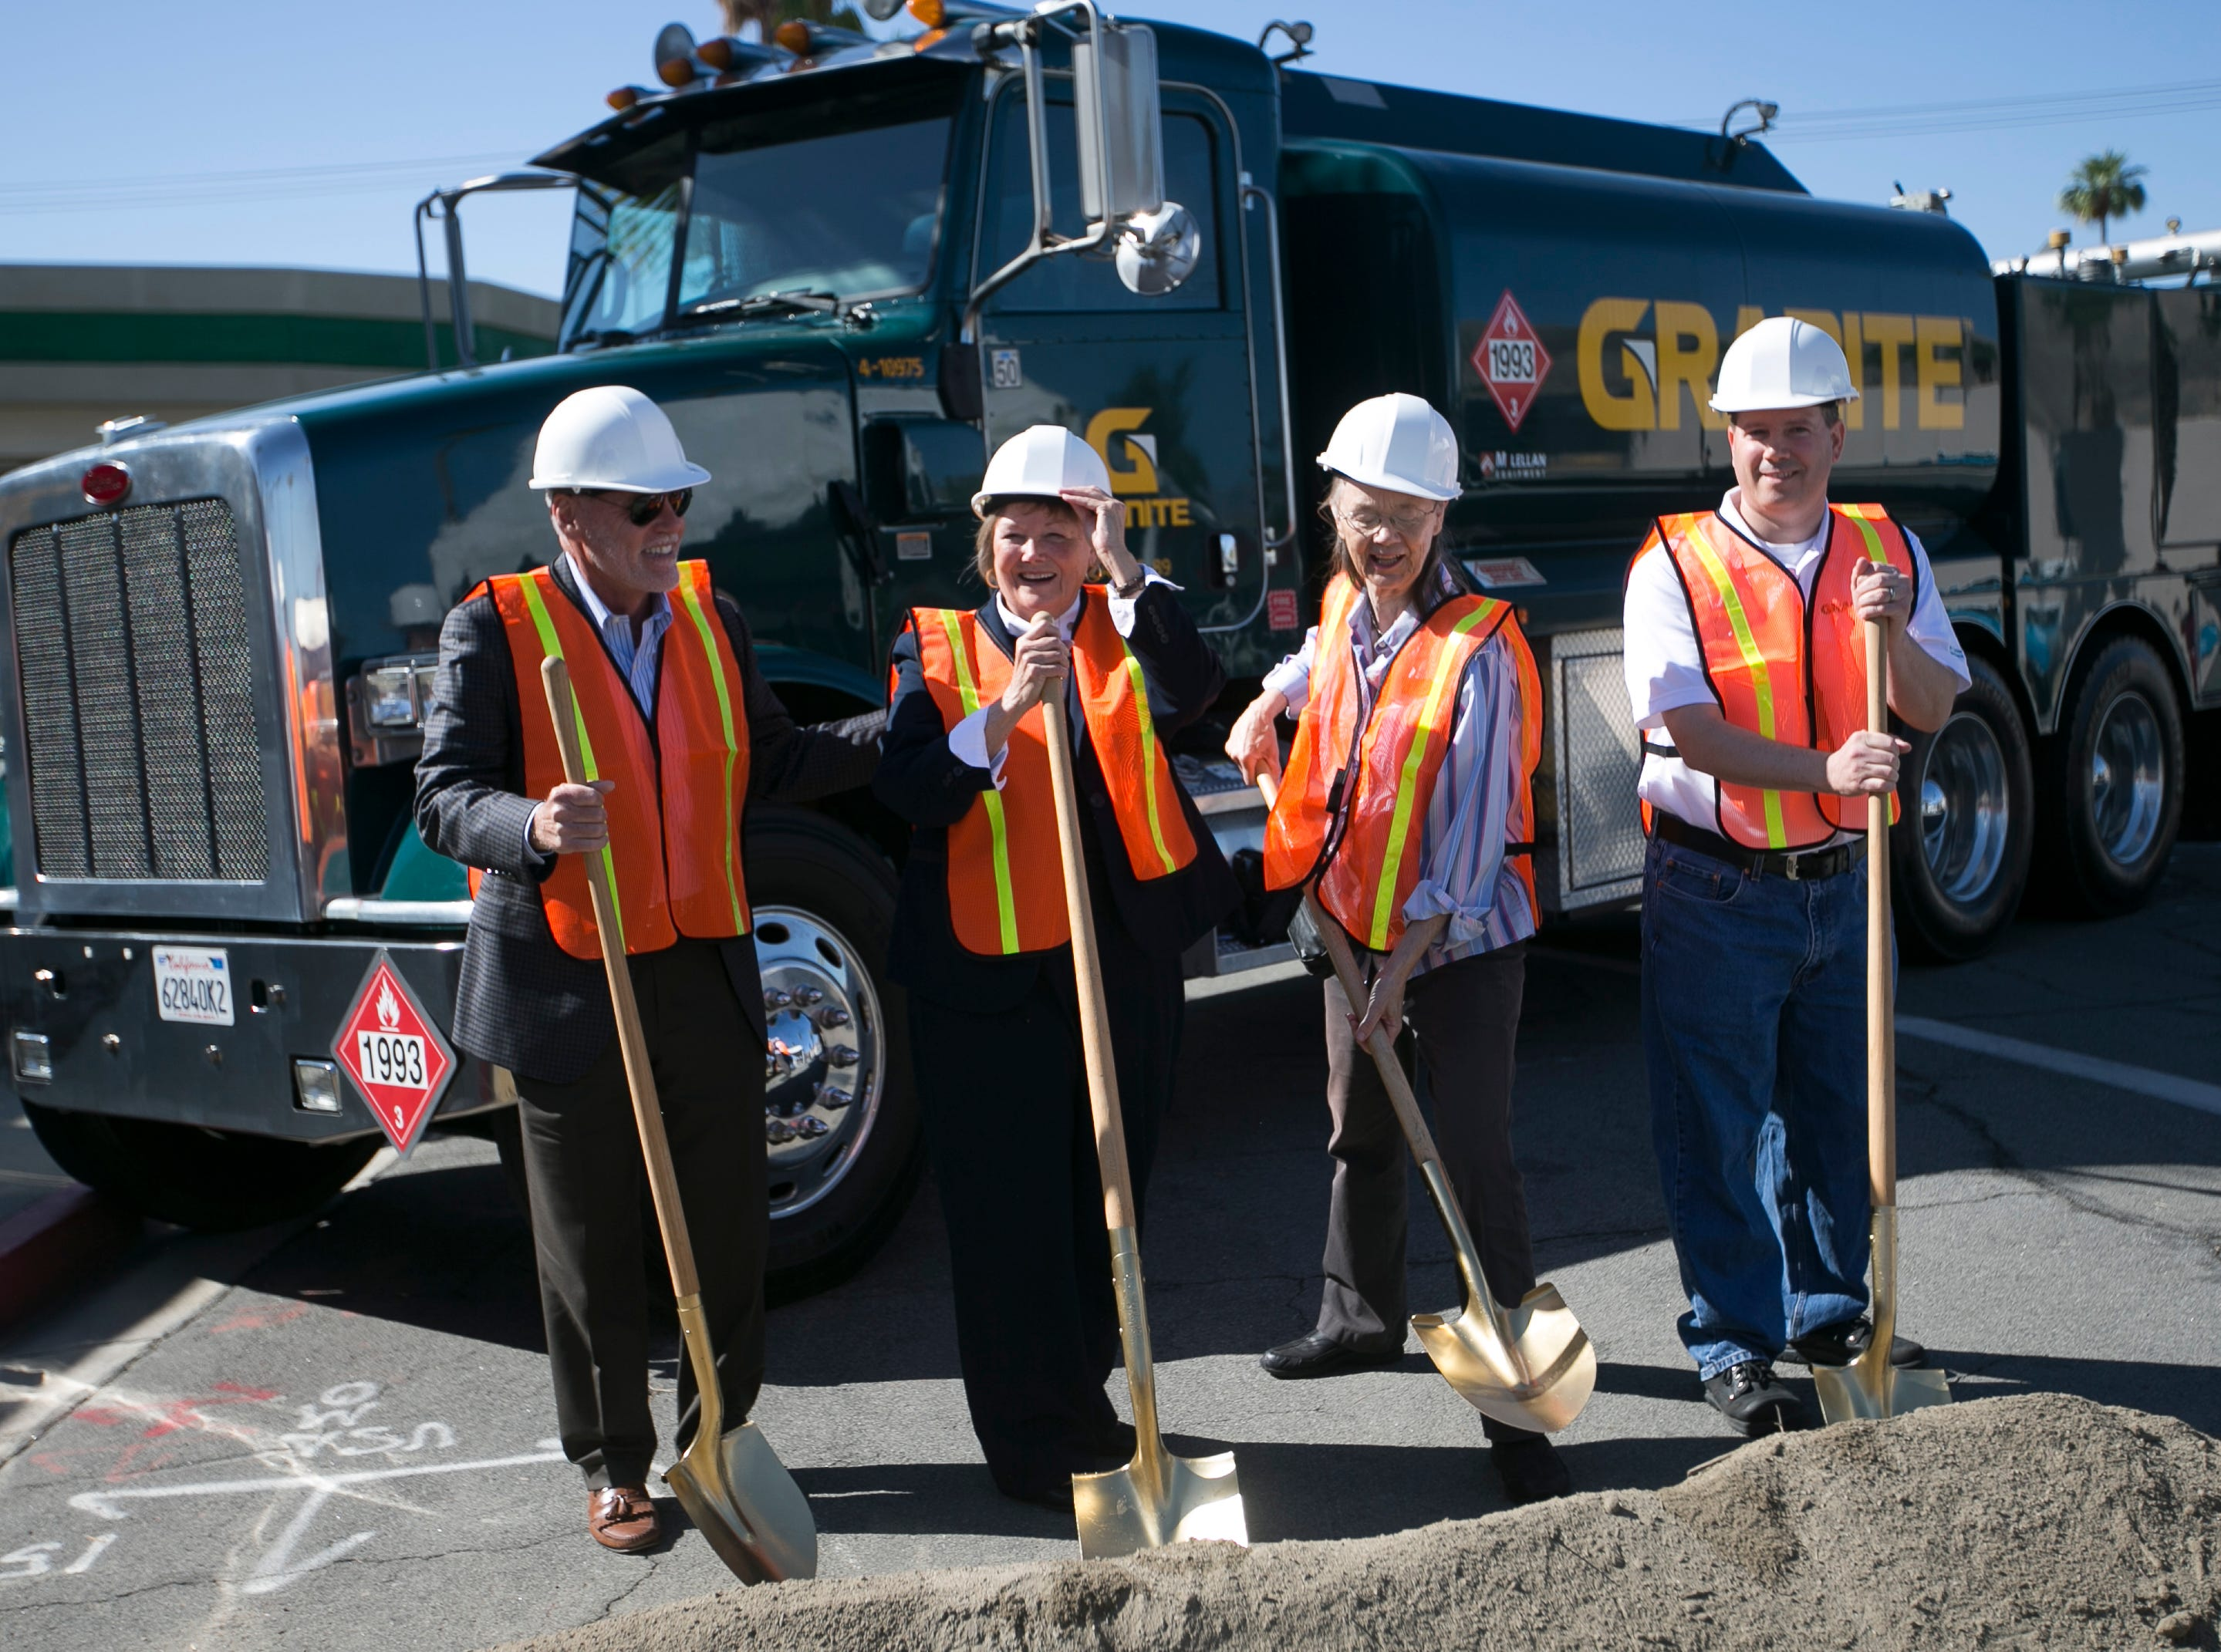 Palm Desert City Councilman Sabby Jonathan (left), Palm Desert Mayor Susan Marie Weber (center left), City Councilwoman Kathleen Kelly (center right) and Granit Construction Joe Richardson (right) participate in the ground breaking ceremony for the construction of a new San Pablo Avenue designed to be a city center in Palm Desert on Wed. May 1, 2019.